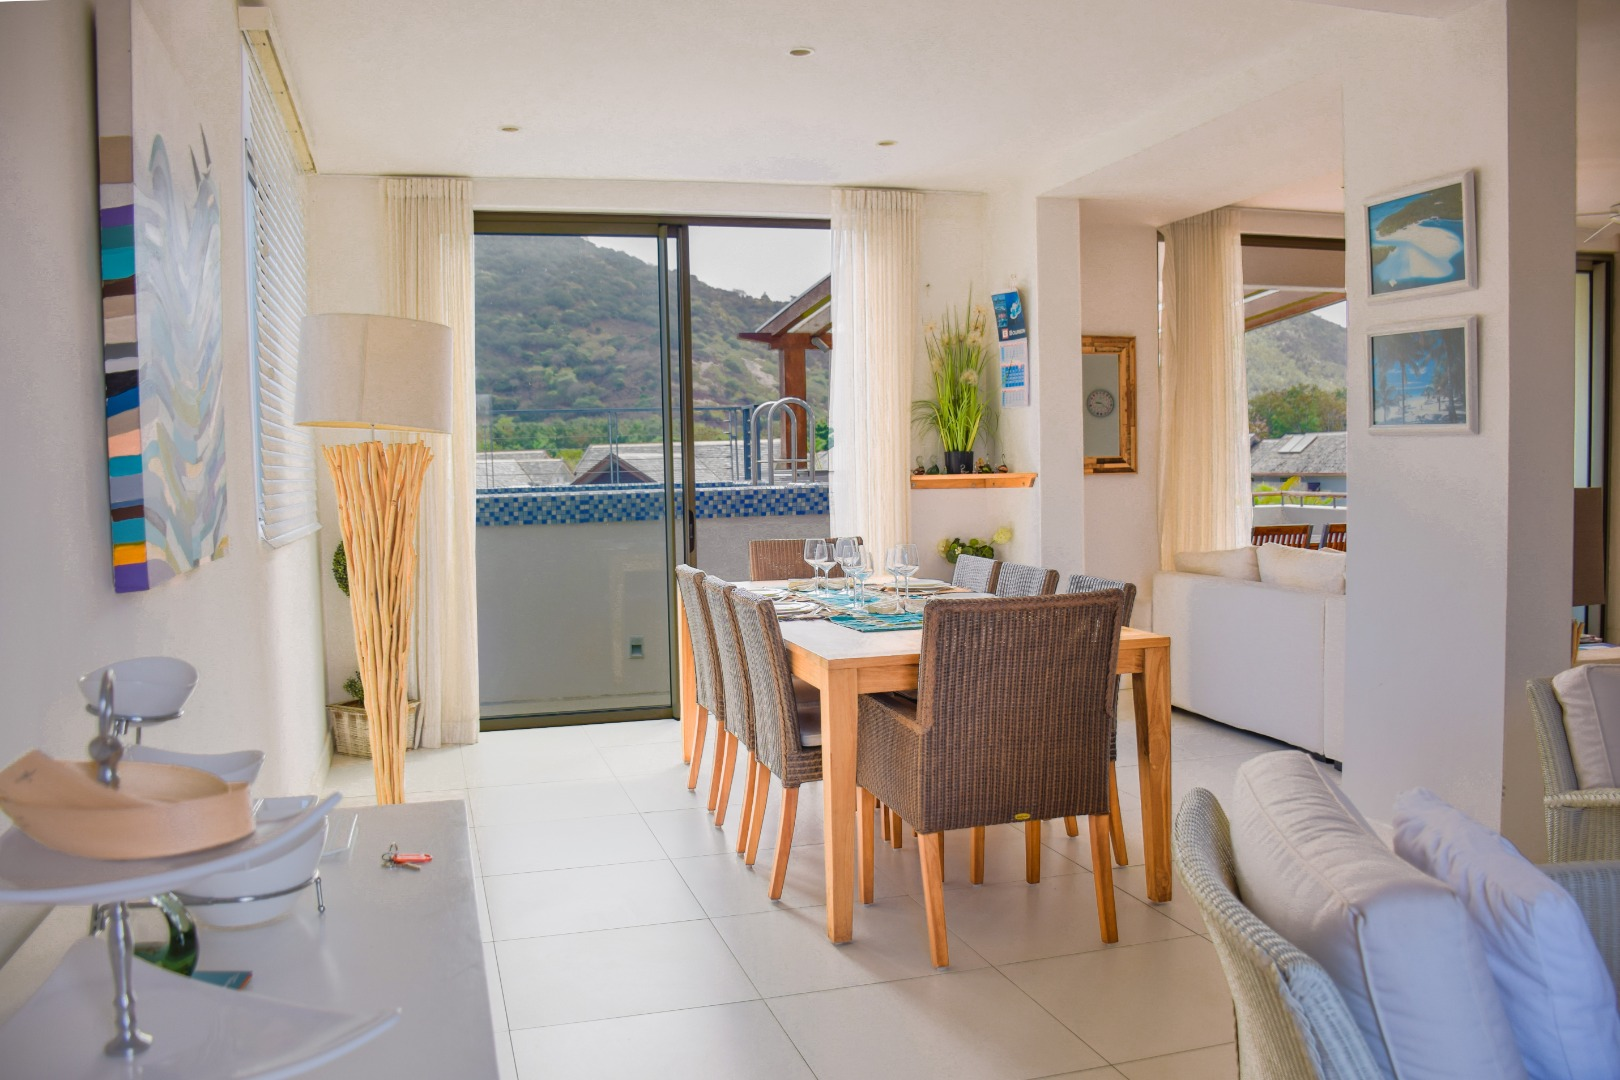 2 Bedroom Apartment / Flat For Sale in Petite Riviere Noire